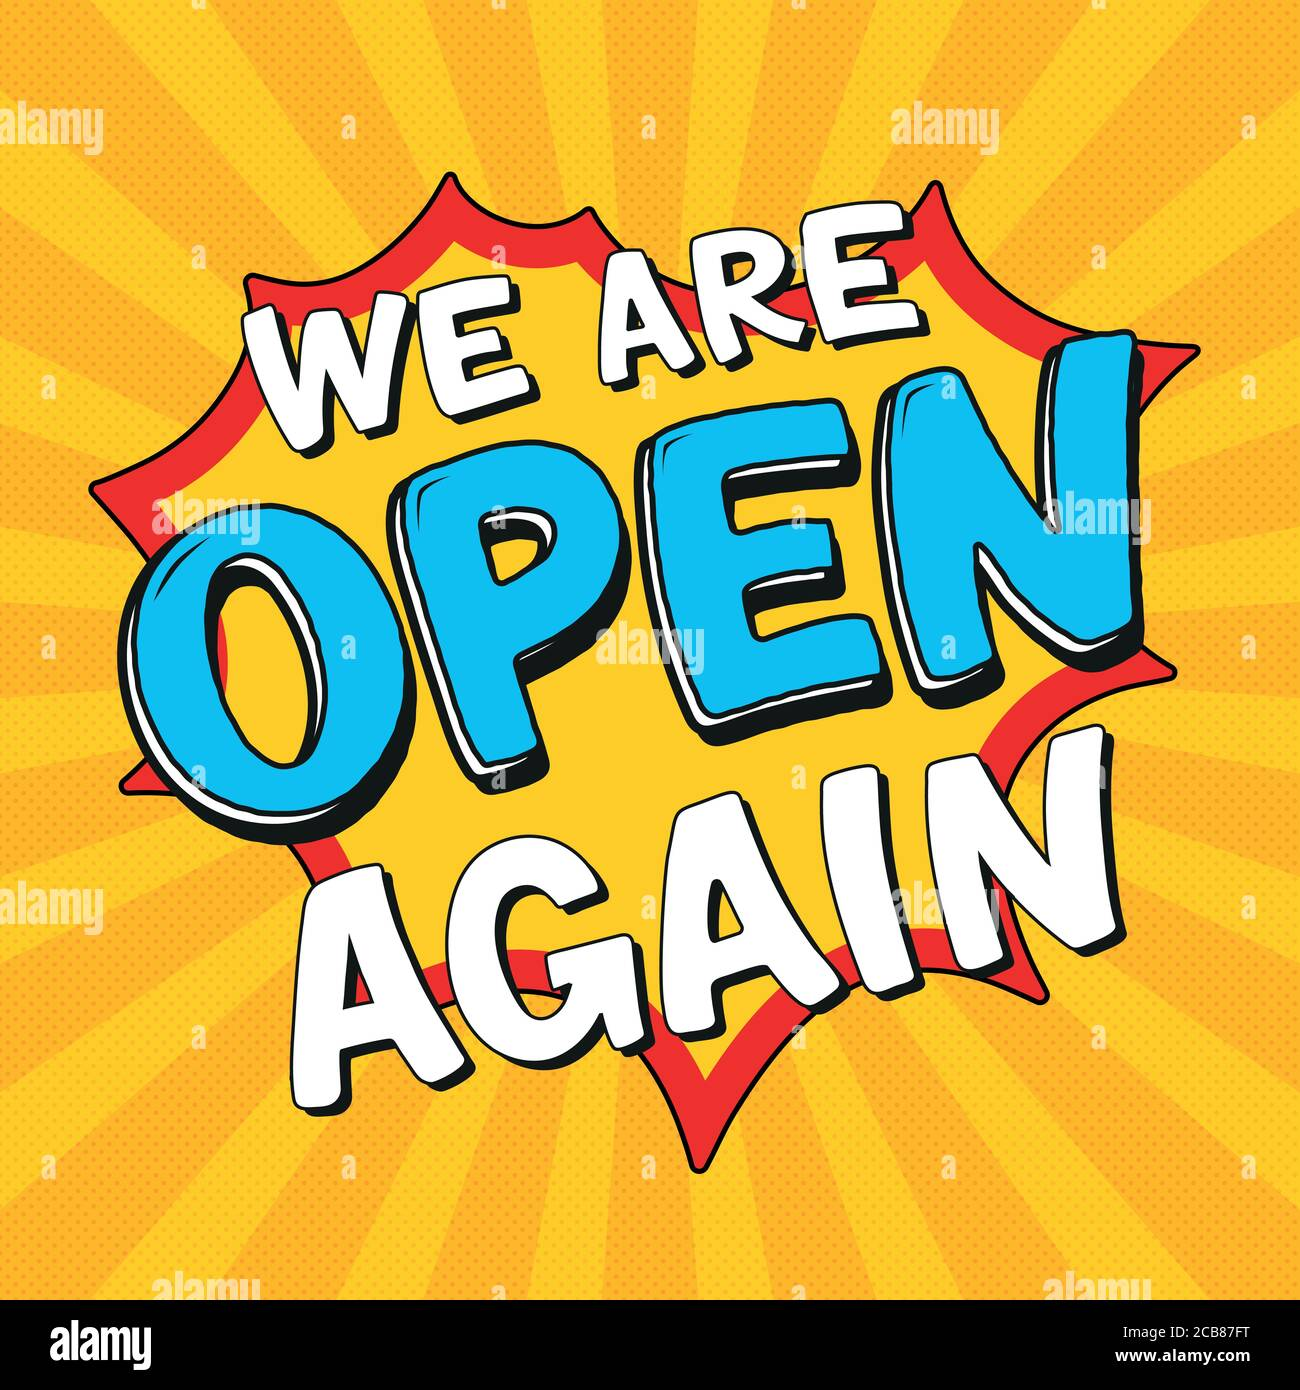 We Are Open Again Lettering After Lockdown Reopening Badge For Small Businesses Shops Cafes Restaurants Hand Drawn Colored Vector Illustration Stock Vector Image Art Alamy